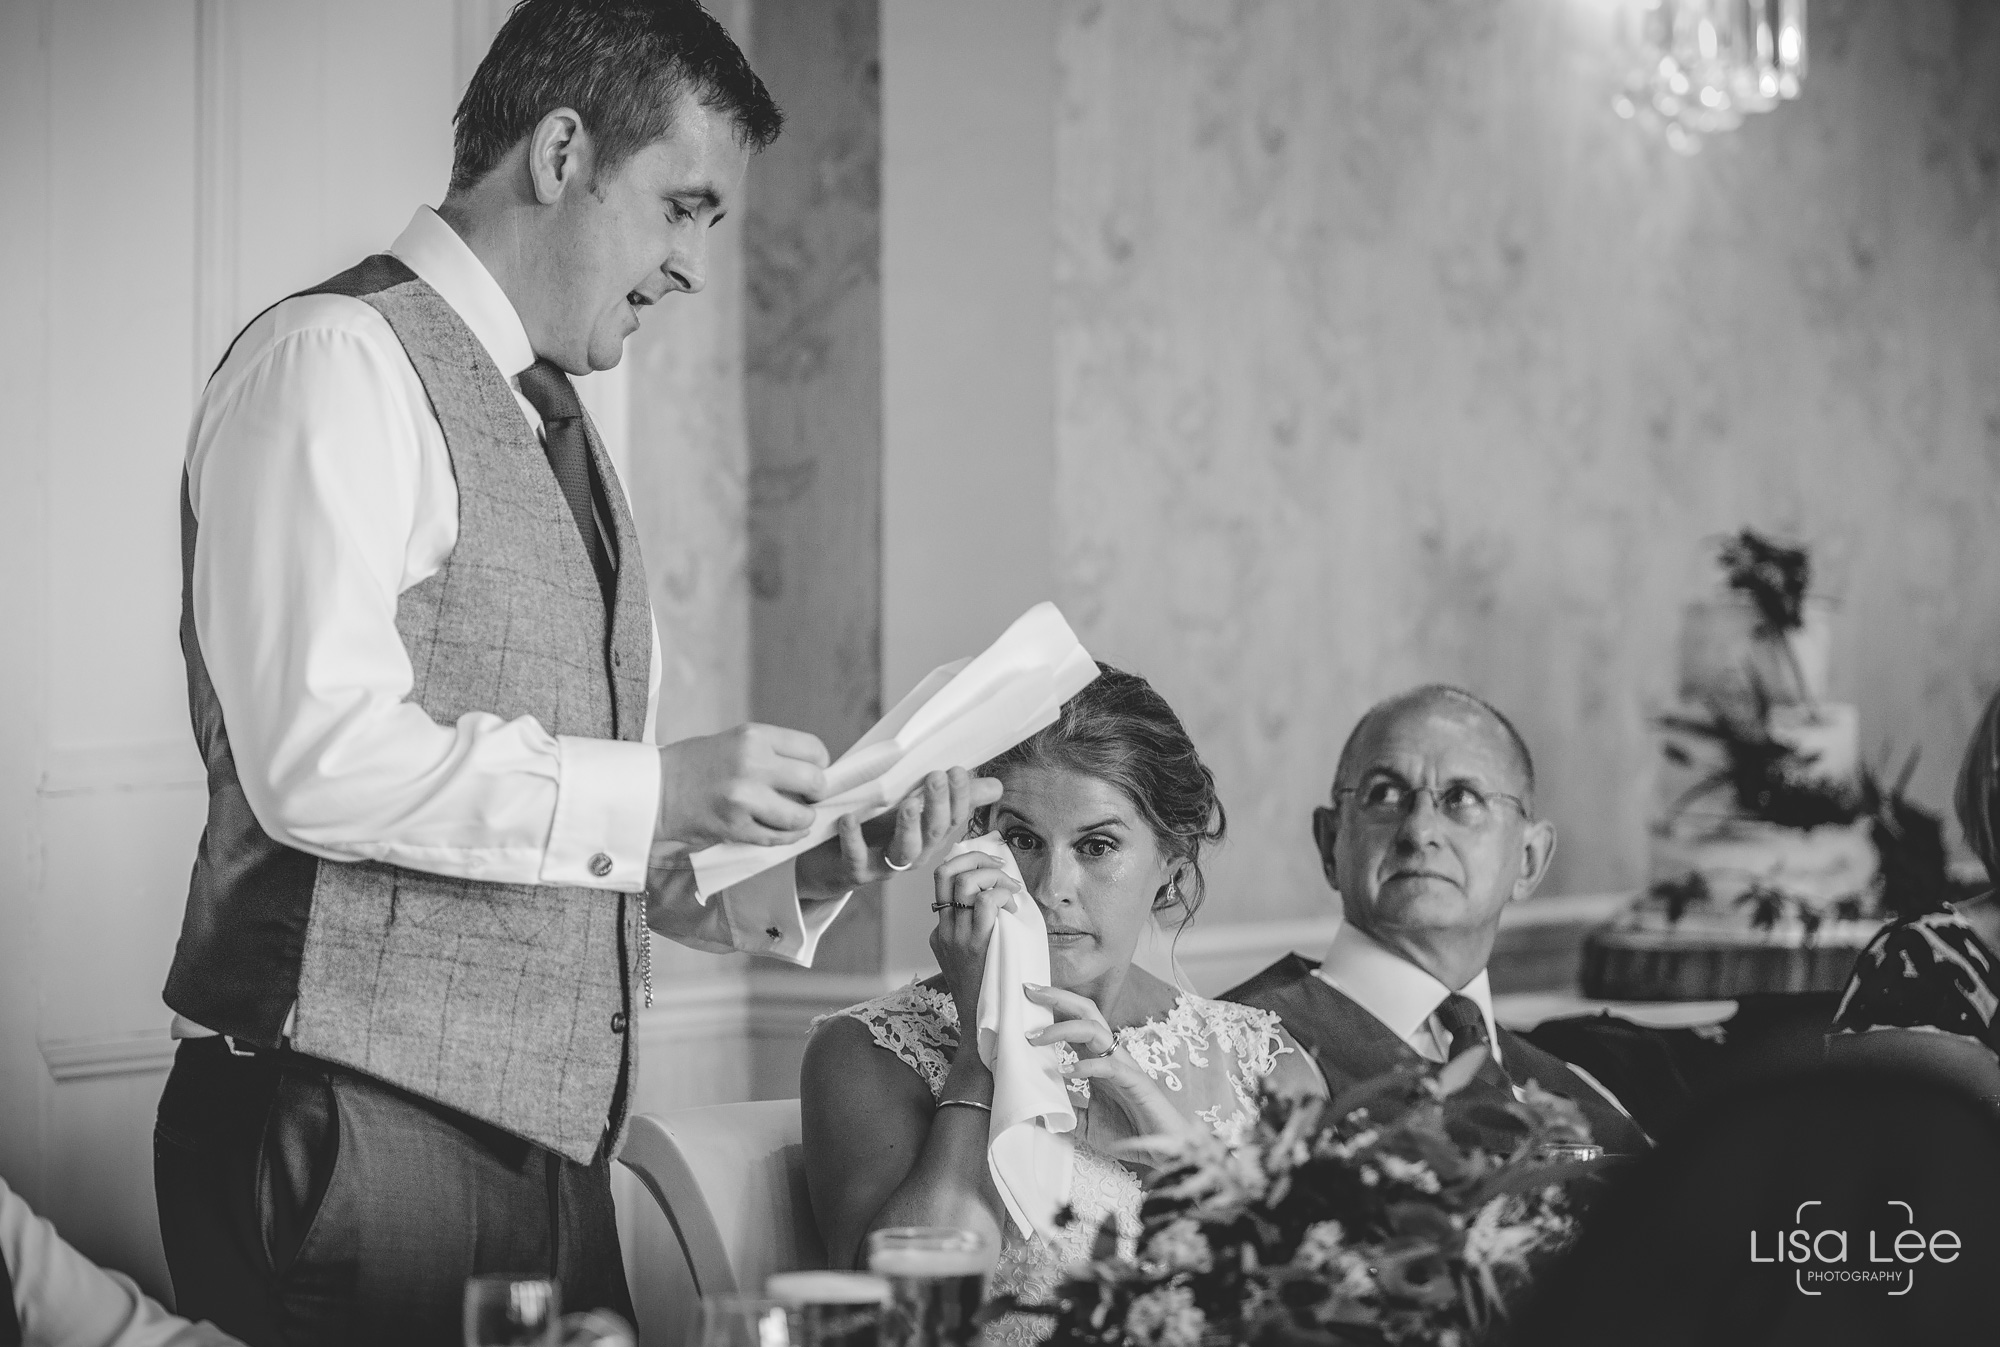 Miramar-Hotel-Lisa-Lee-Documentary-Wedding-Photography-Speeches-8.jpg